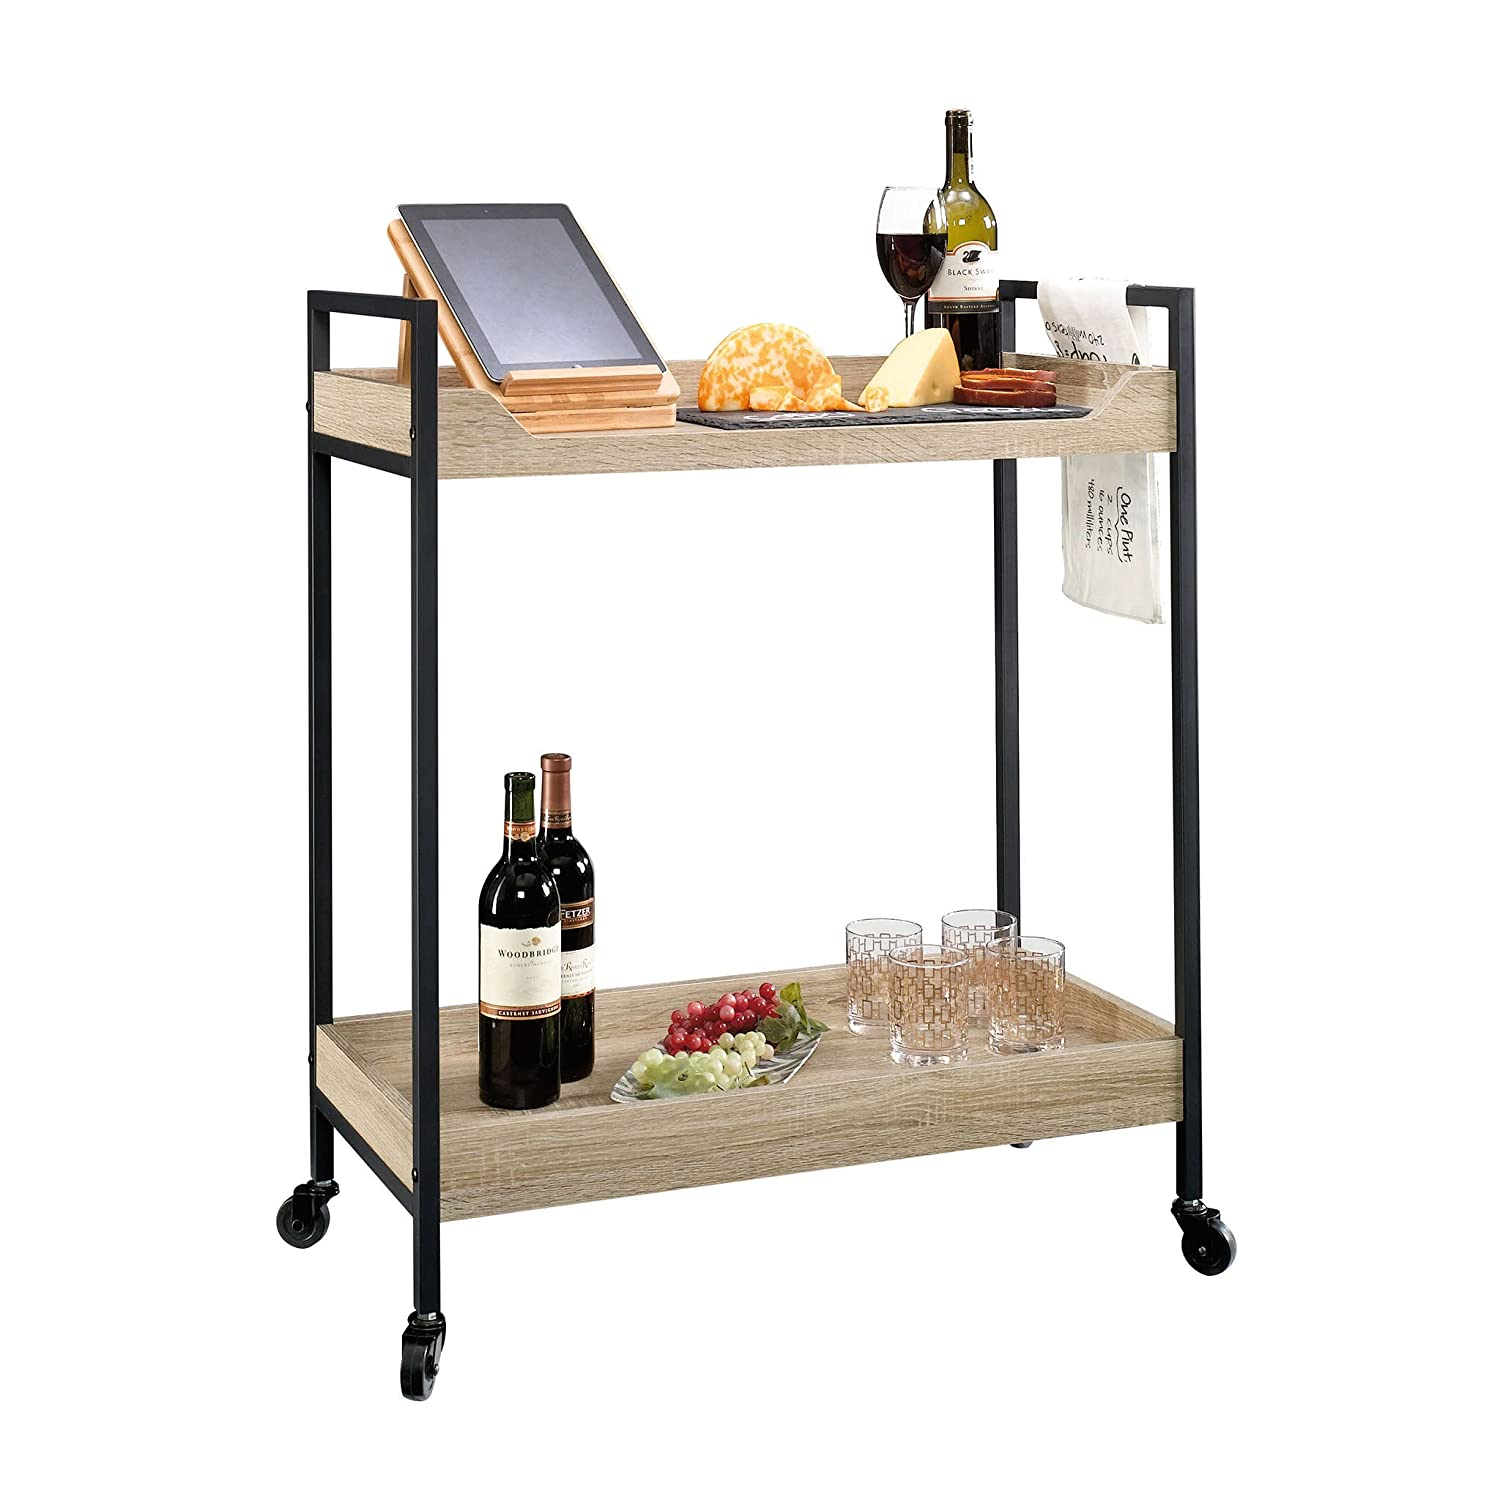 Sauder 420043, Bar North Avenue Cart, Craftsman Oak Sauder Woodworking